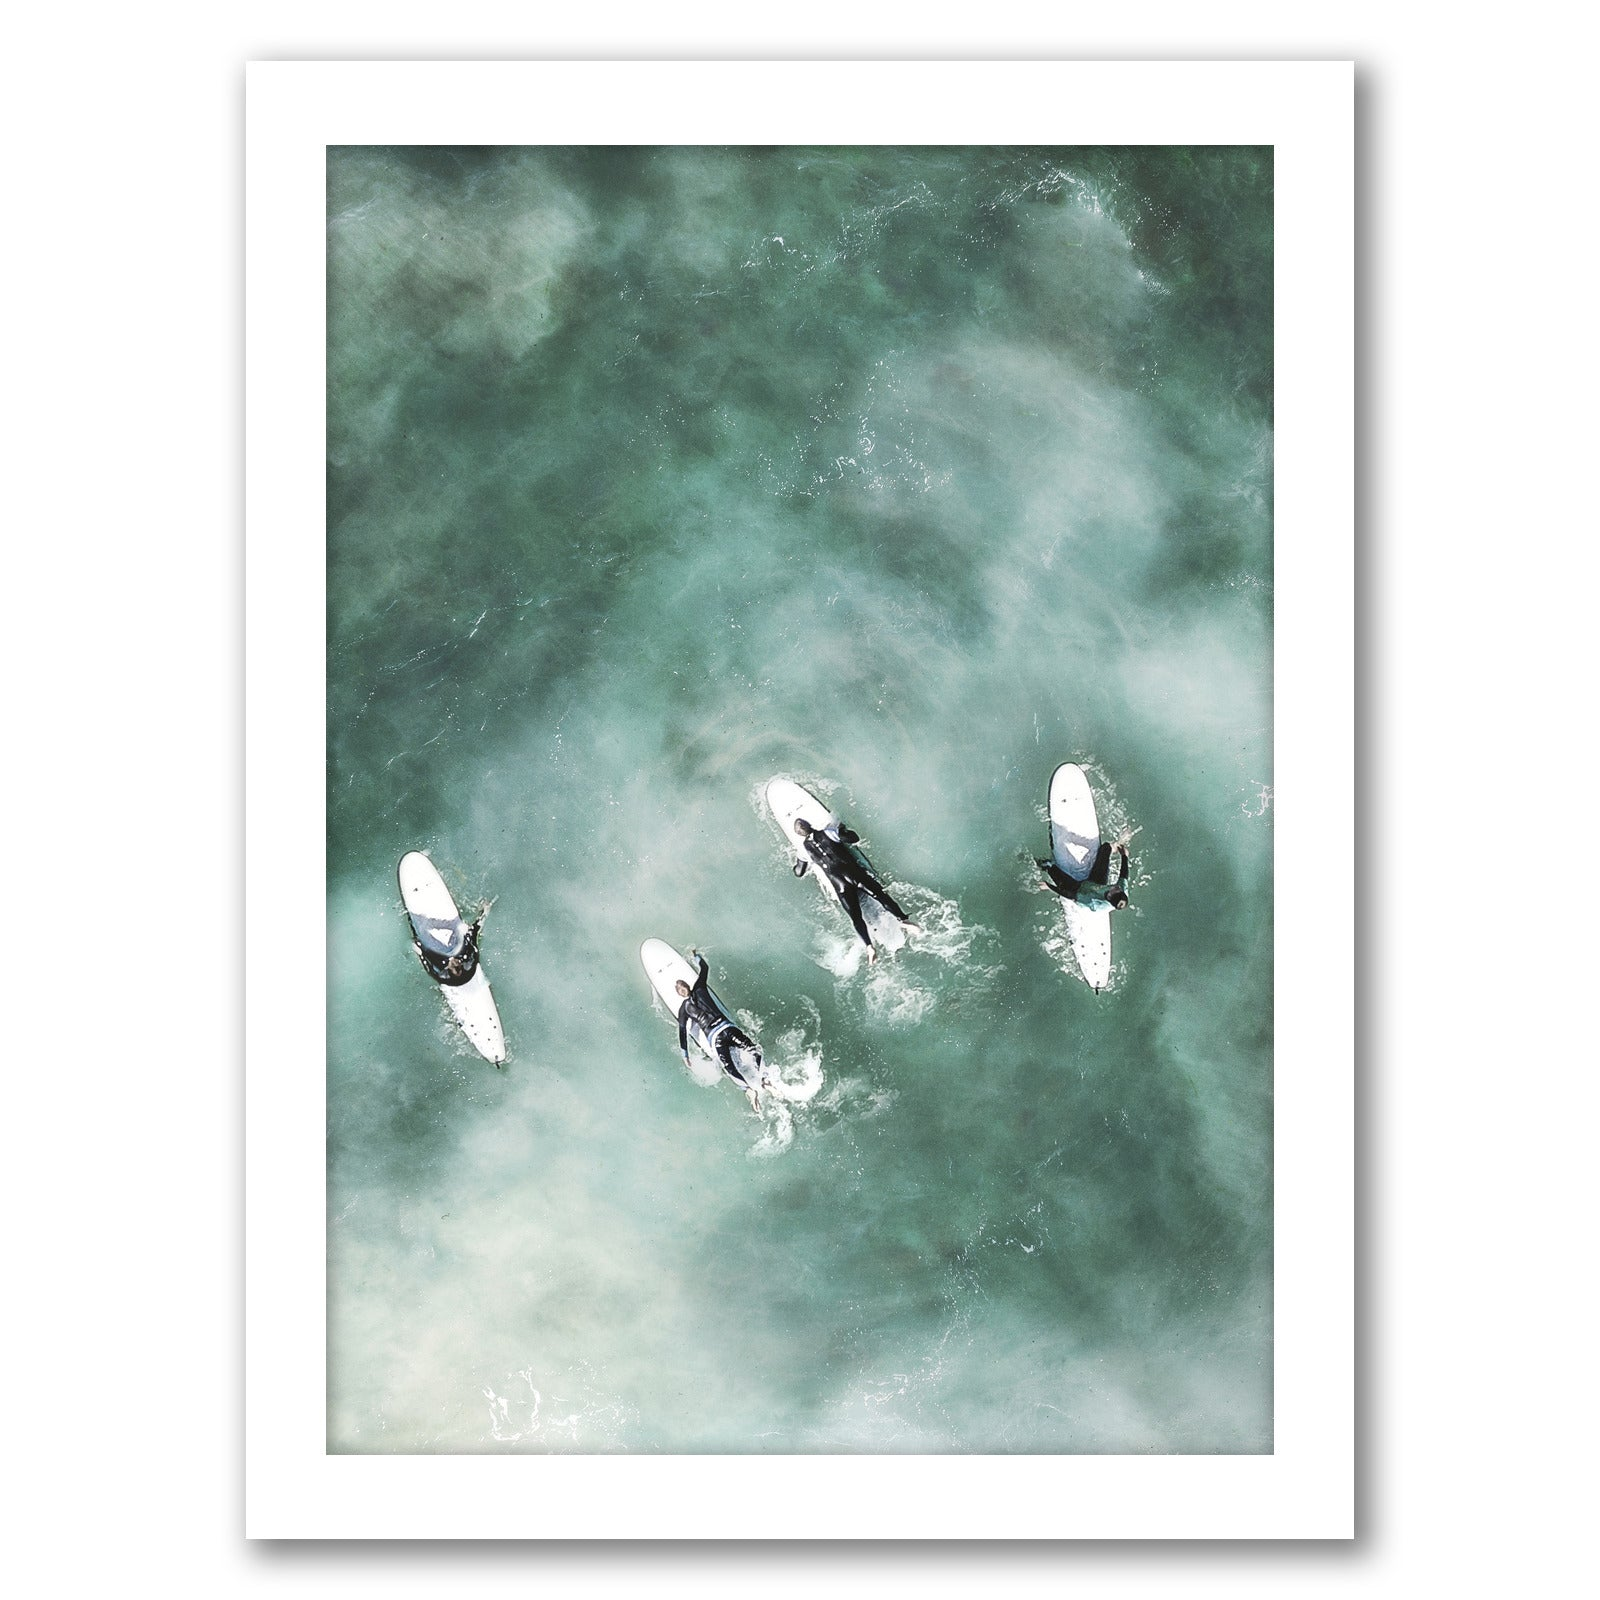 Surfers Rest by Tanya Shumkina - White Framed Print - Wall Art - Americanflat